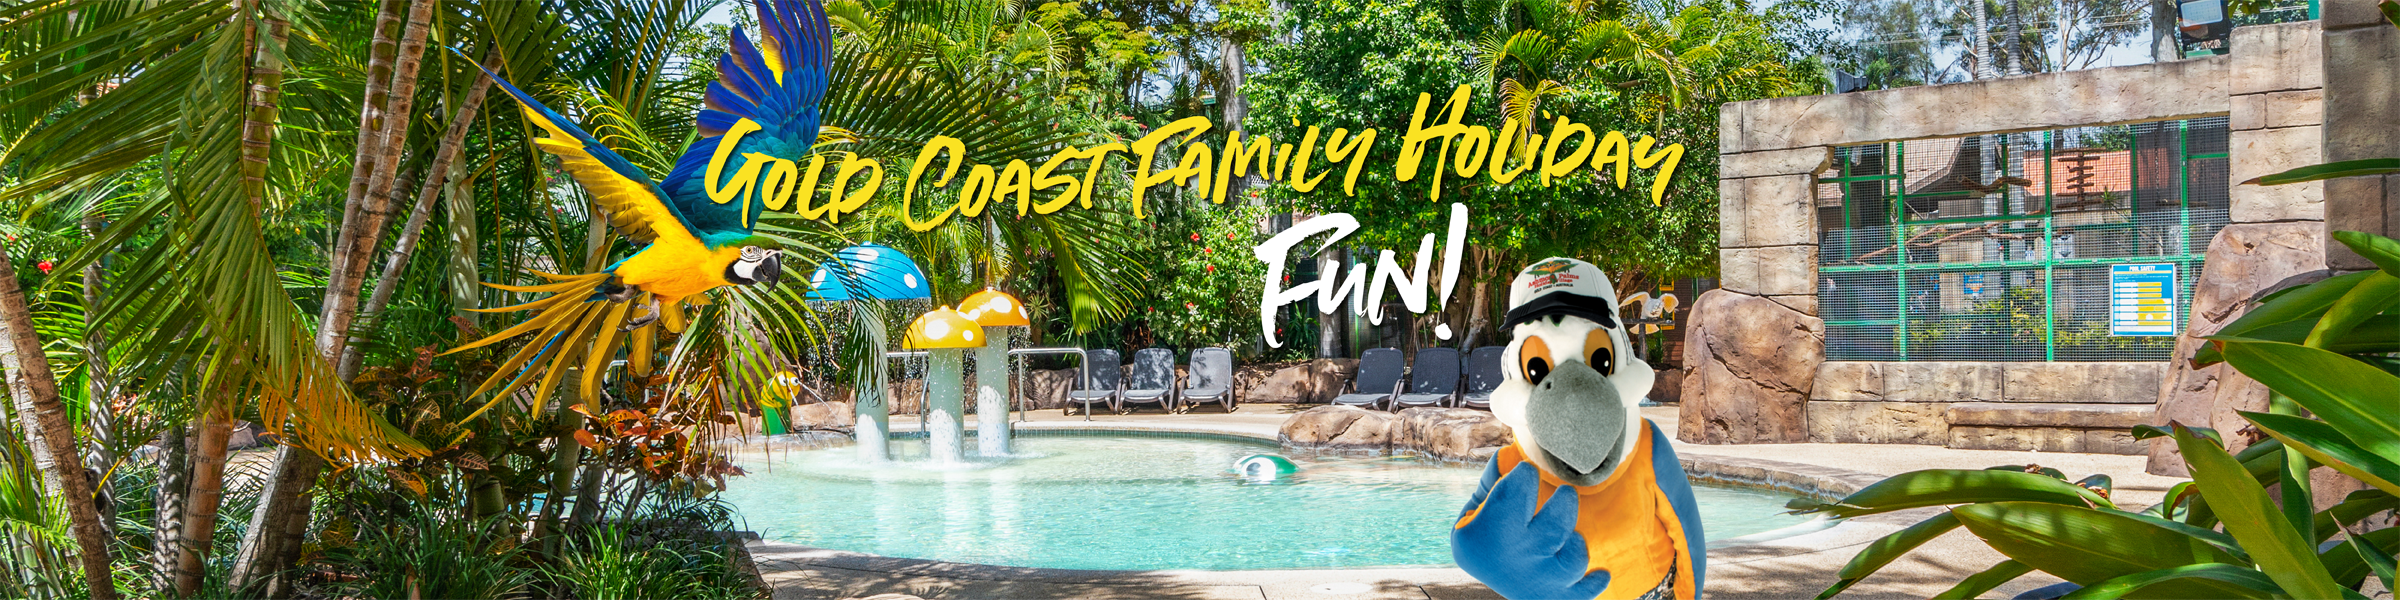 Ashmore Palms is a Gold Coast holiday park popular with familiies